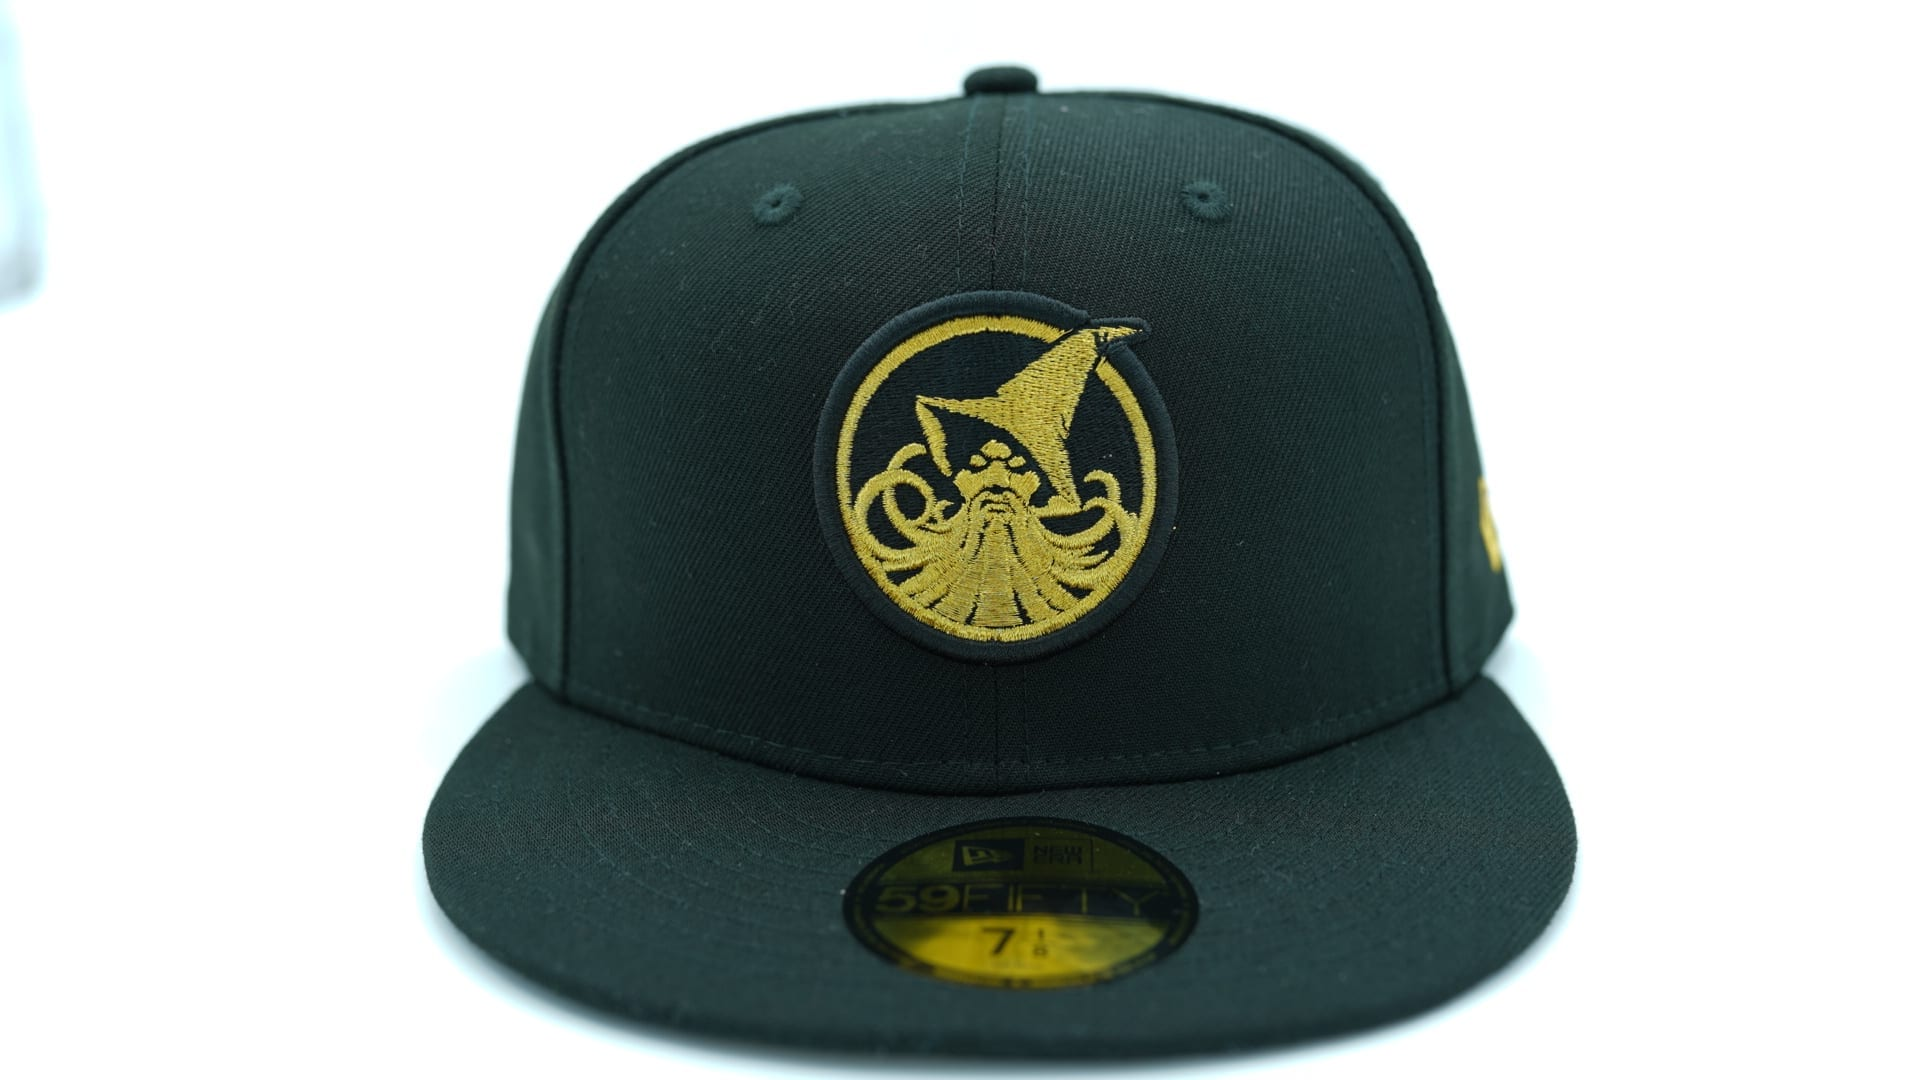 dgk-new-era-59fifty-fitted-baseball-cap-hat-59fifty_1